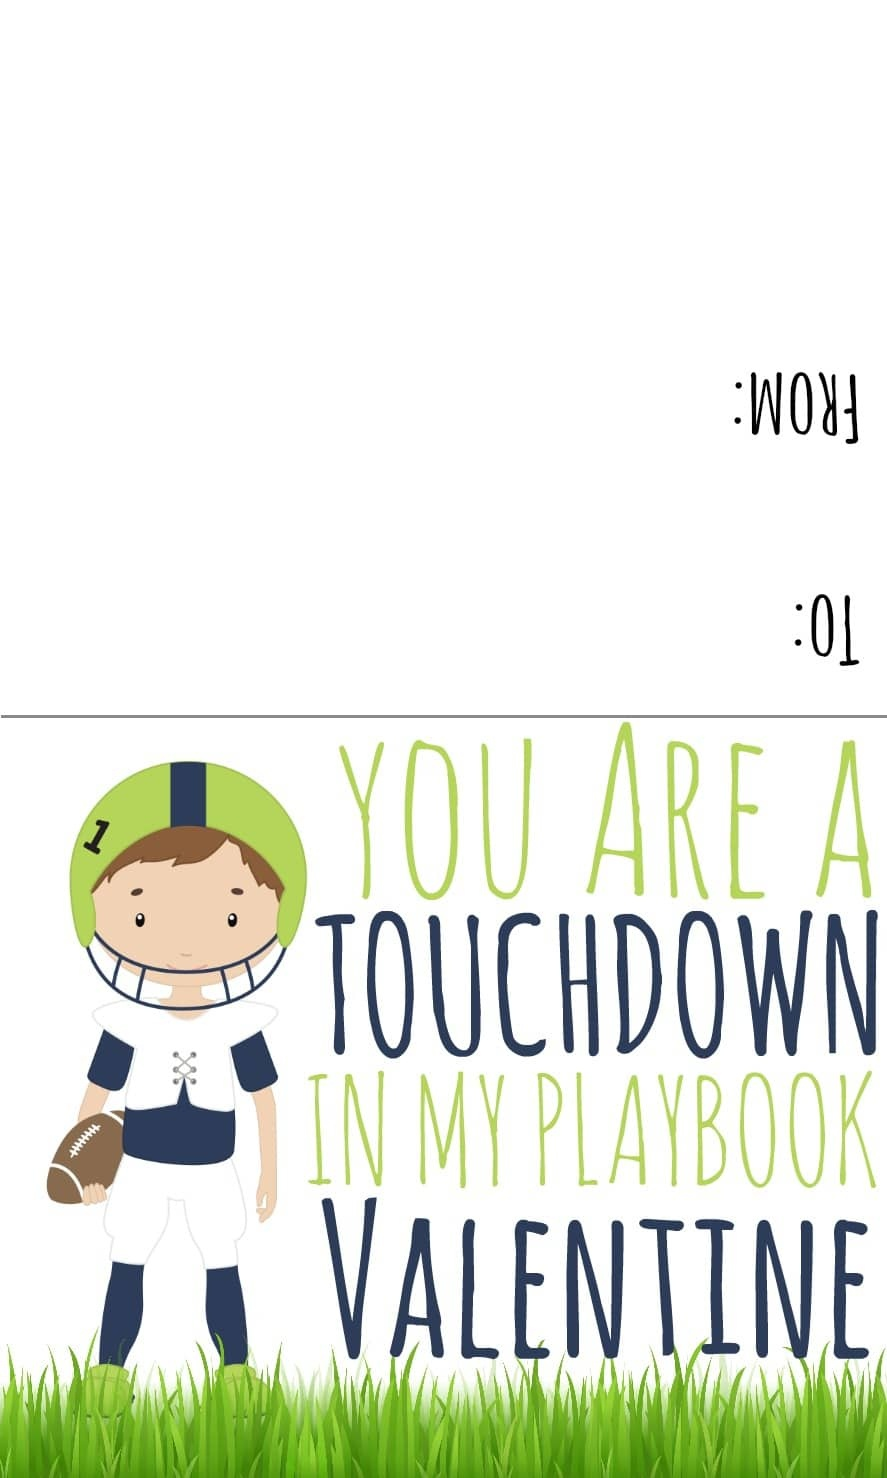 Sports Valentines Printables - Candy Free Valentine Ideas - Free Printable Football Valentines Day Cards